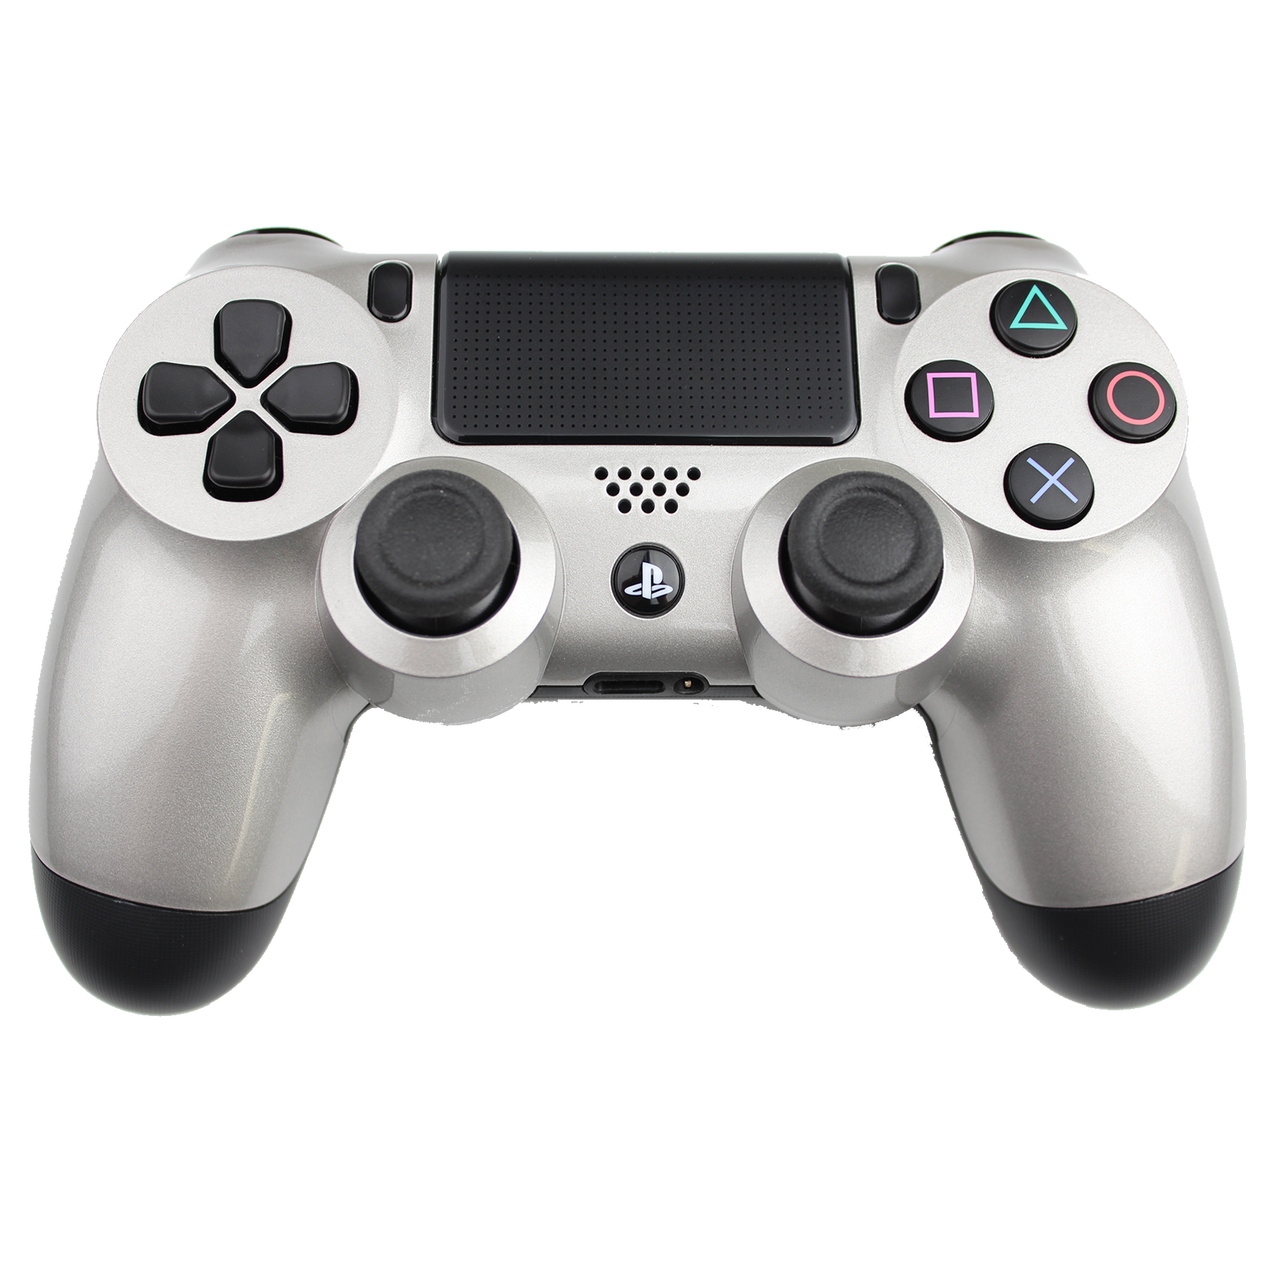 Ps transparent png pictures. Controller clipart playstation 4 controller